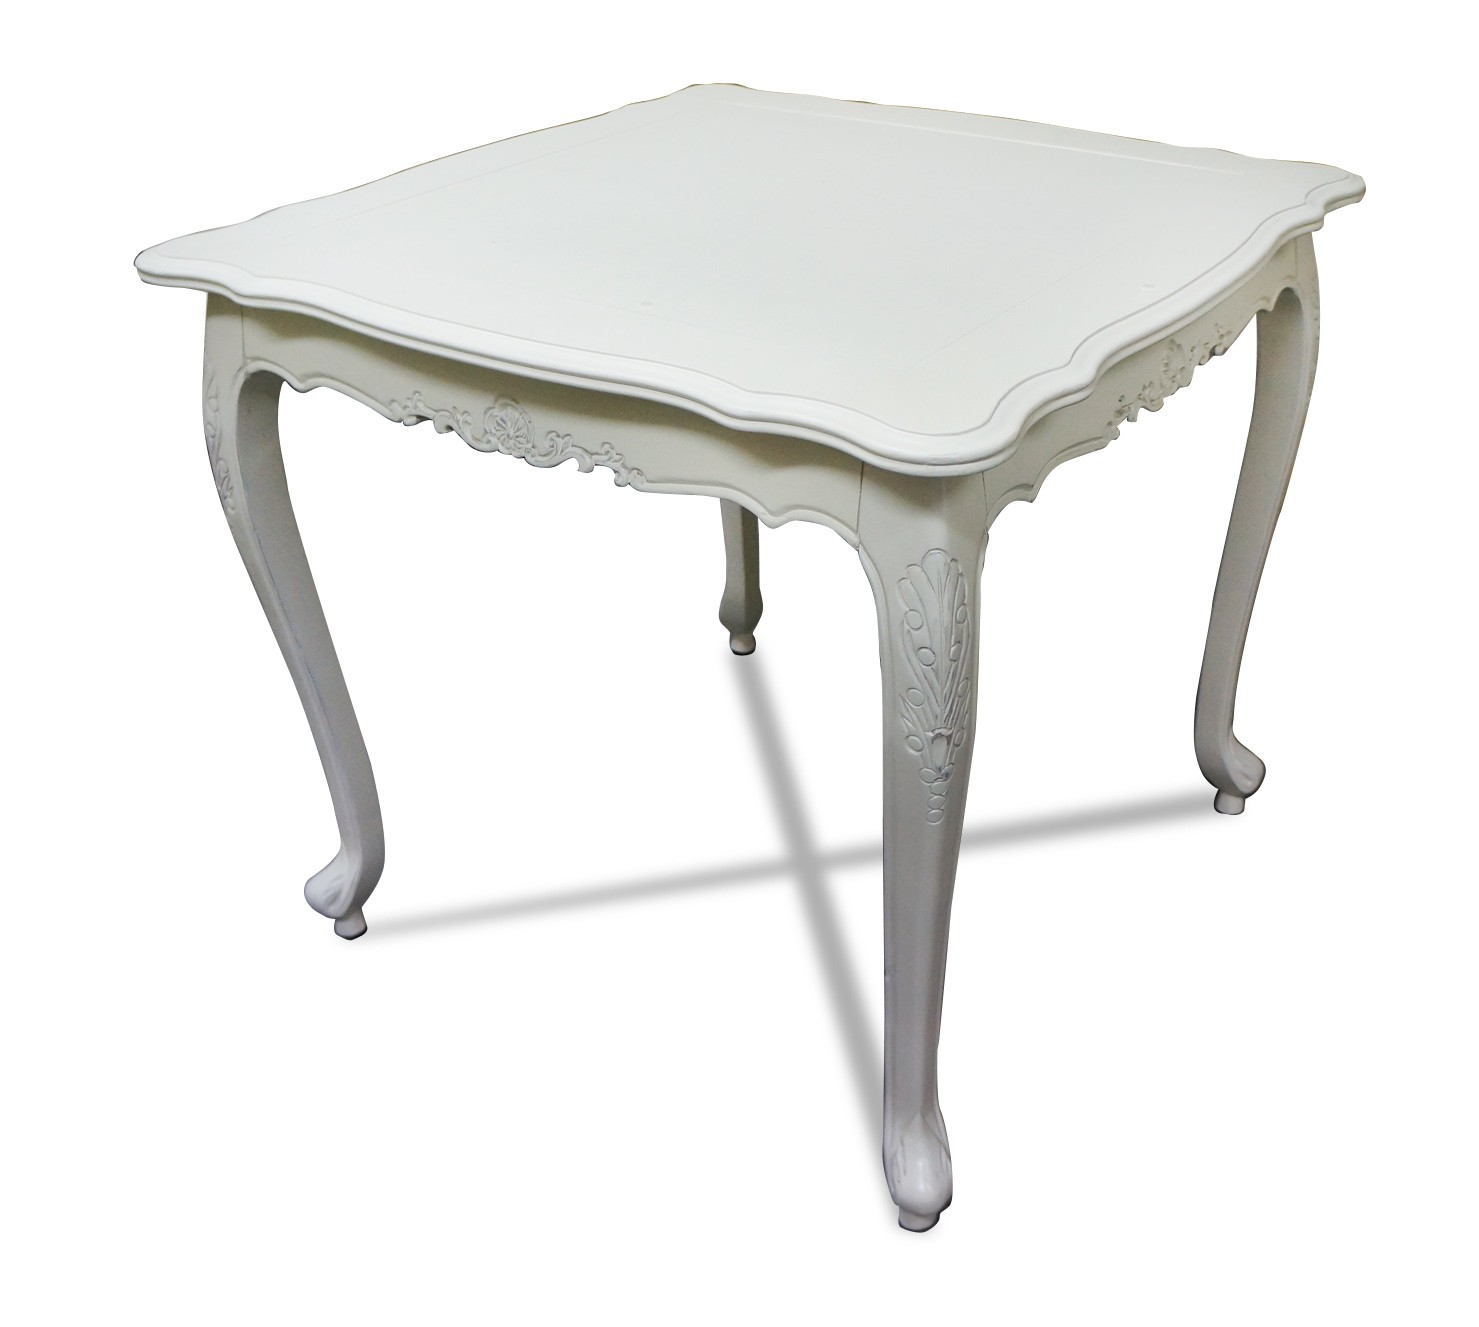 French provincial furniture classic hall table in white for White foyer table